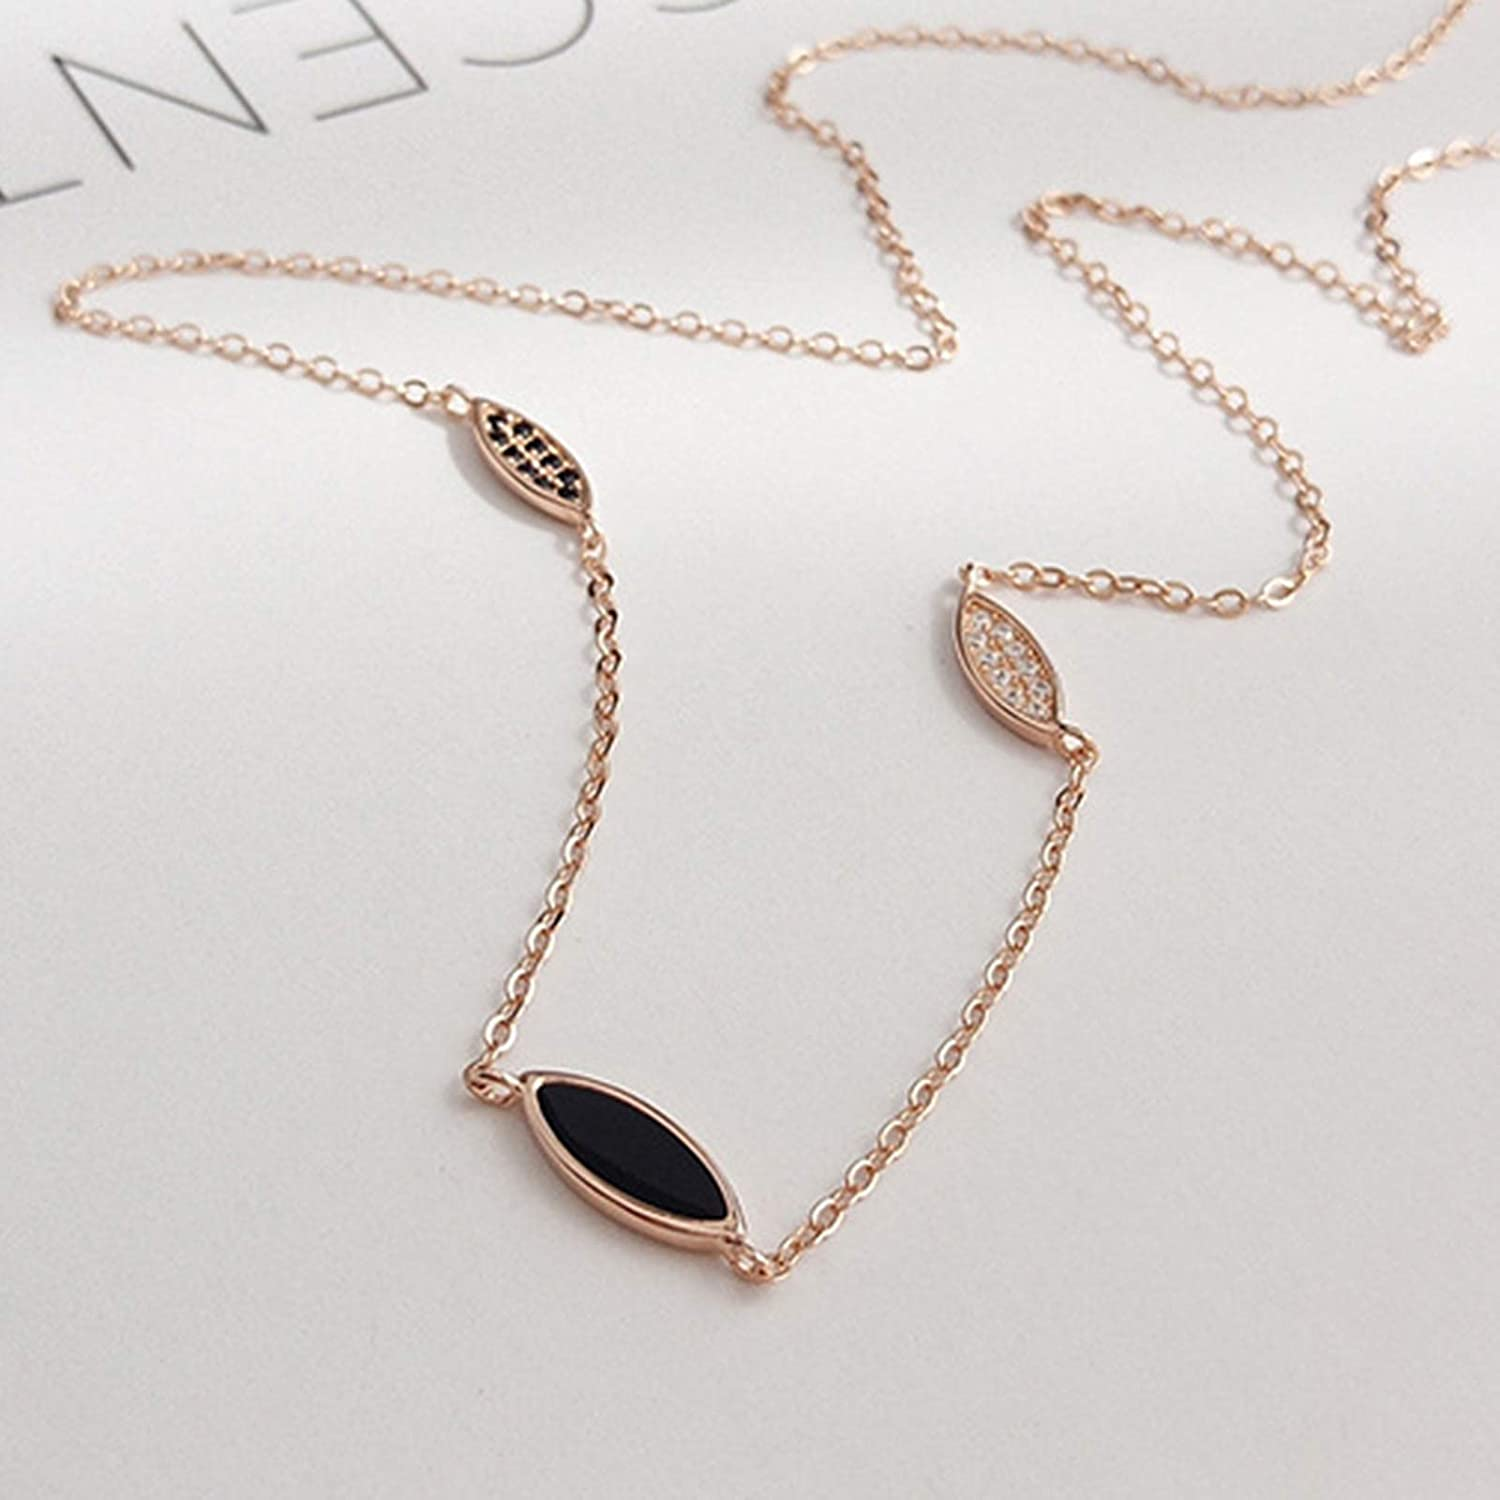 Daesar 925 Sterling Silver Necklace for Women Necklace Leaves Necklace Rose Gold